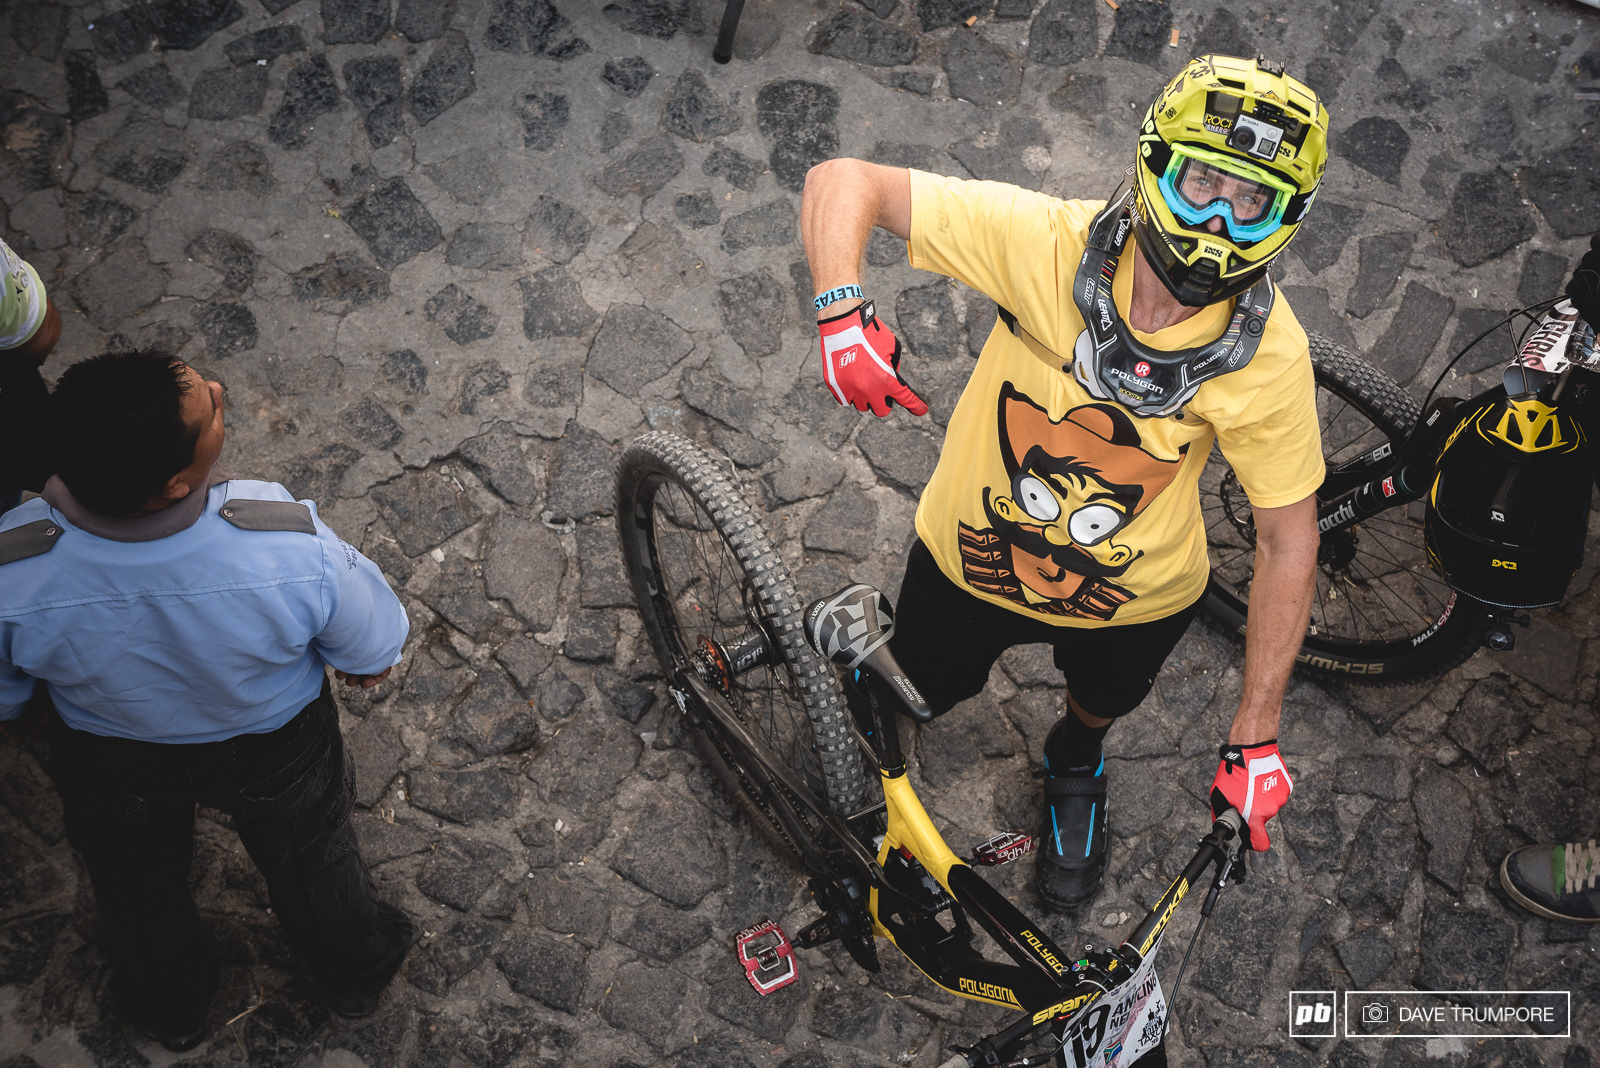 downhill taxco mexico 2015 photo epic pinkbike